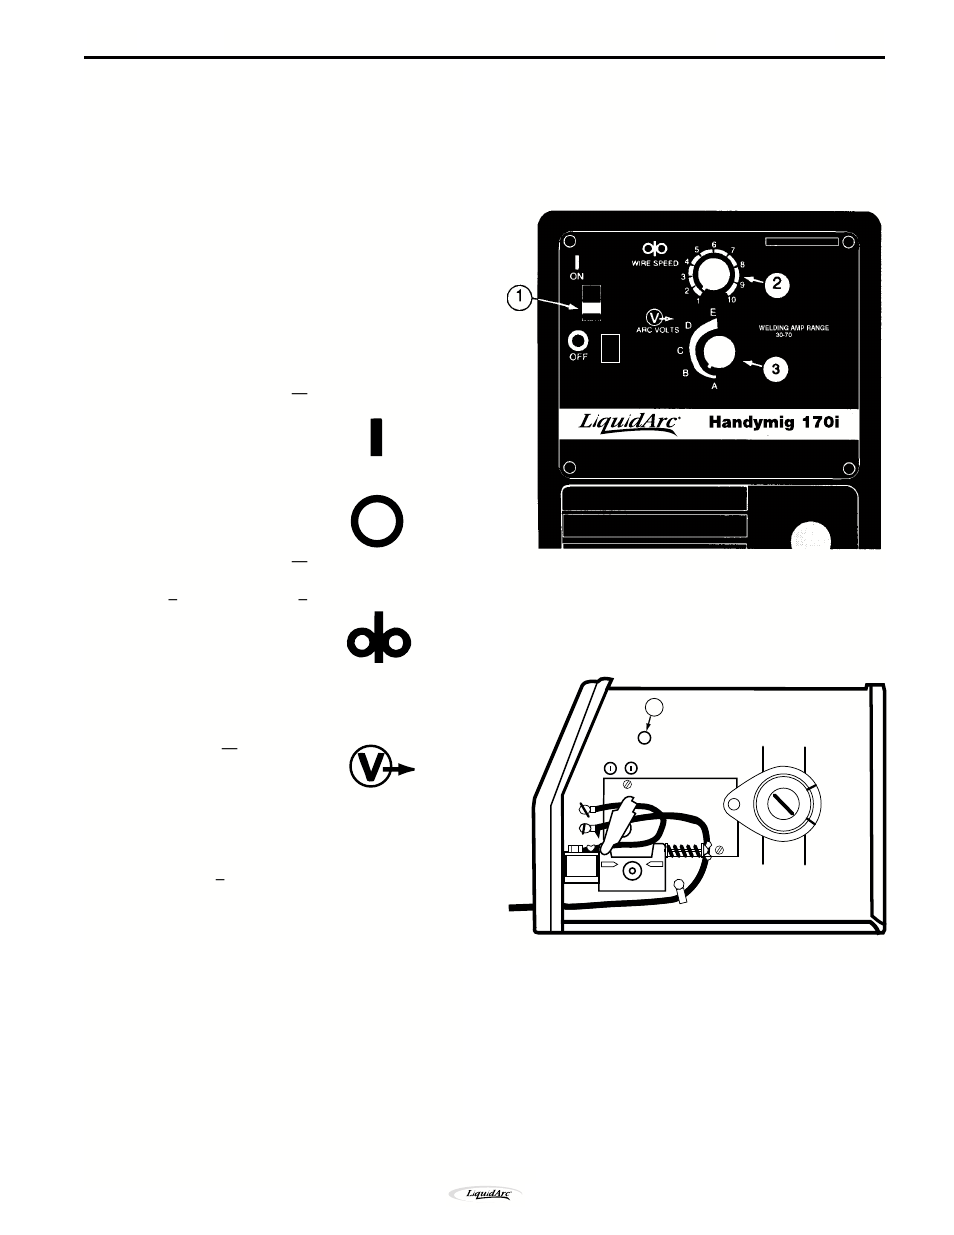 Operation Off On Arc Volts Wire Speed Welding Capability Lincoln Welder Wiring Diagram Electric Im711 Handy Mig 170i User Manual Page 17 45